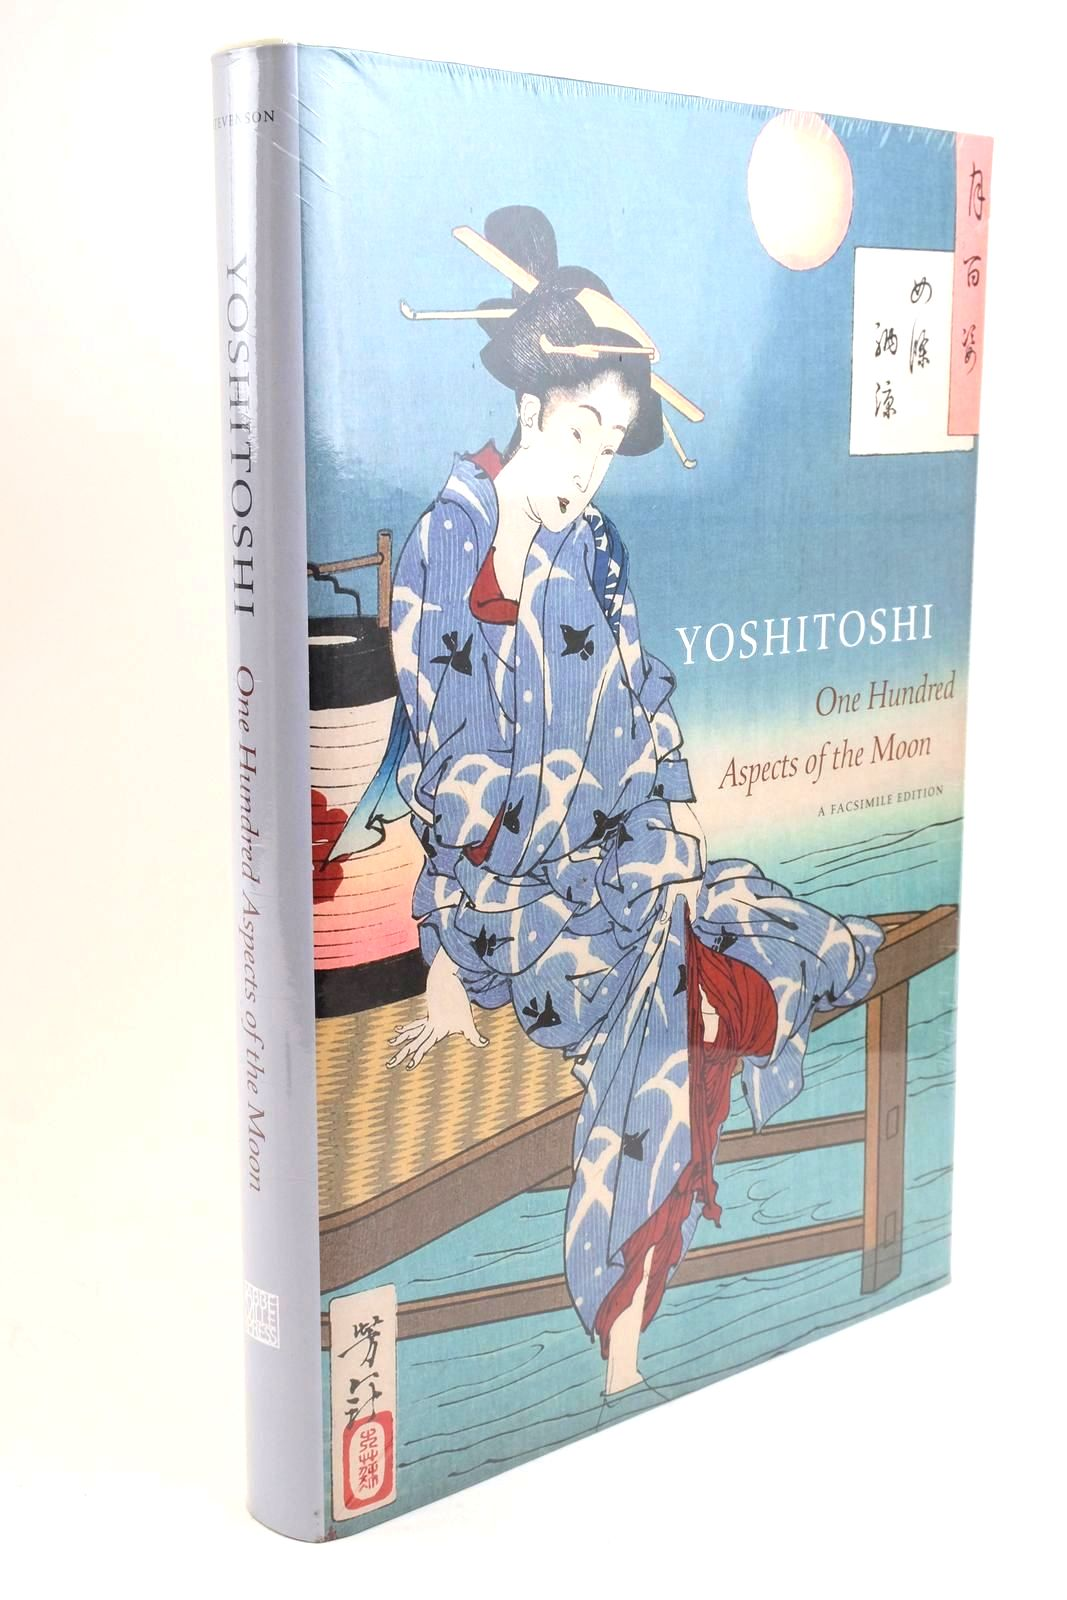 Photo of YOSHITOSHI: ONE HUNDRED ASPECTS OF THE MOON- Stock Number: 1321740